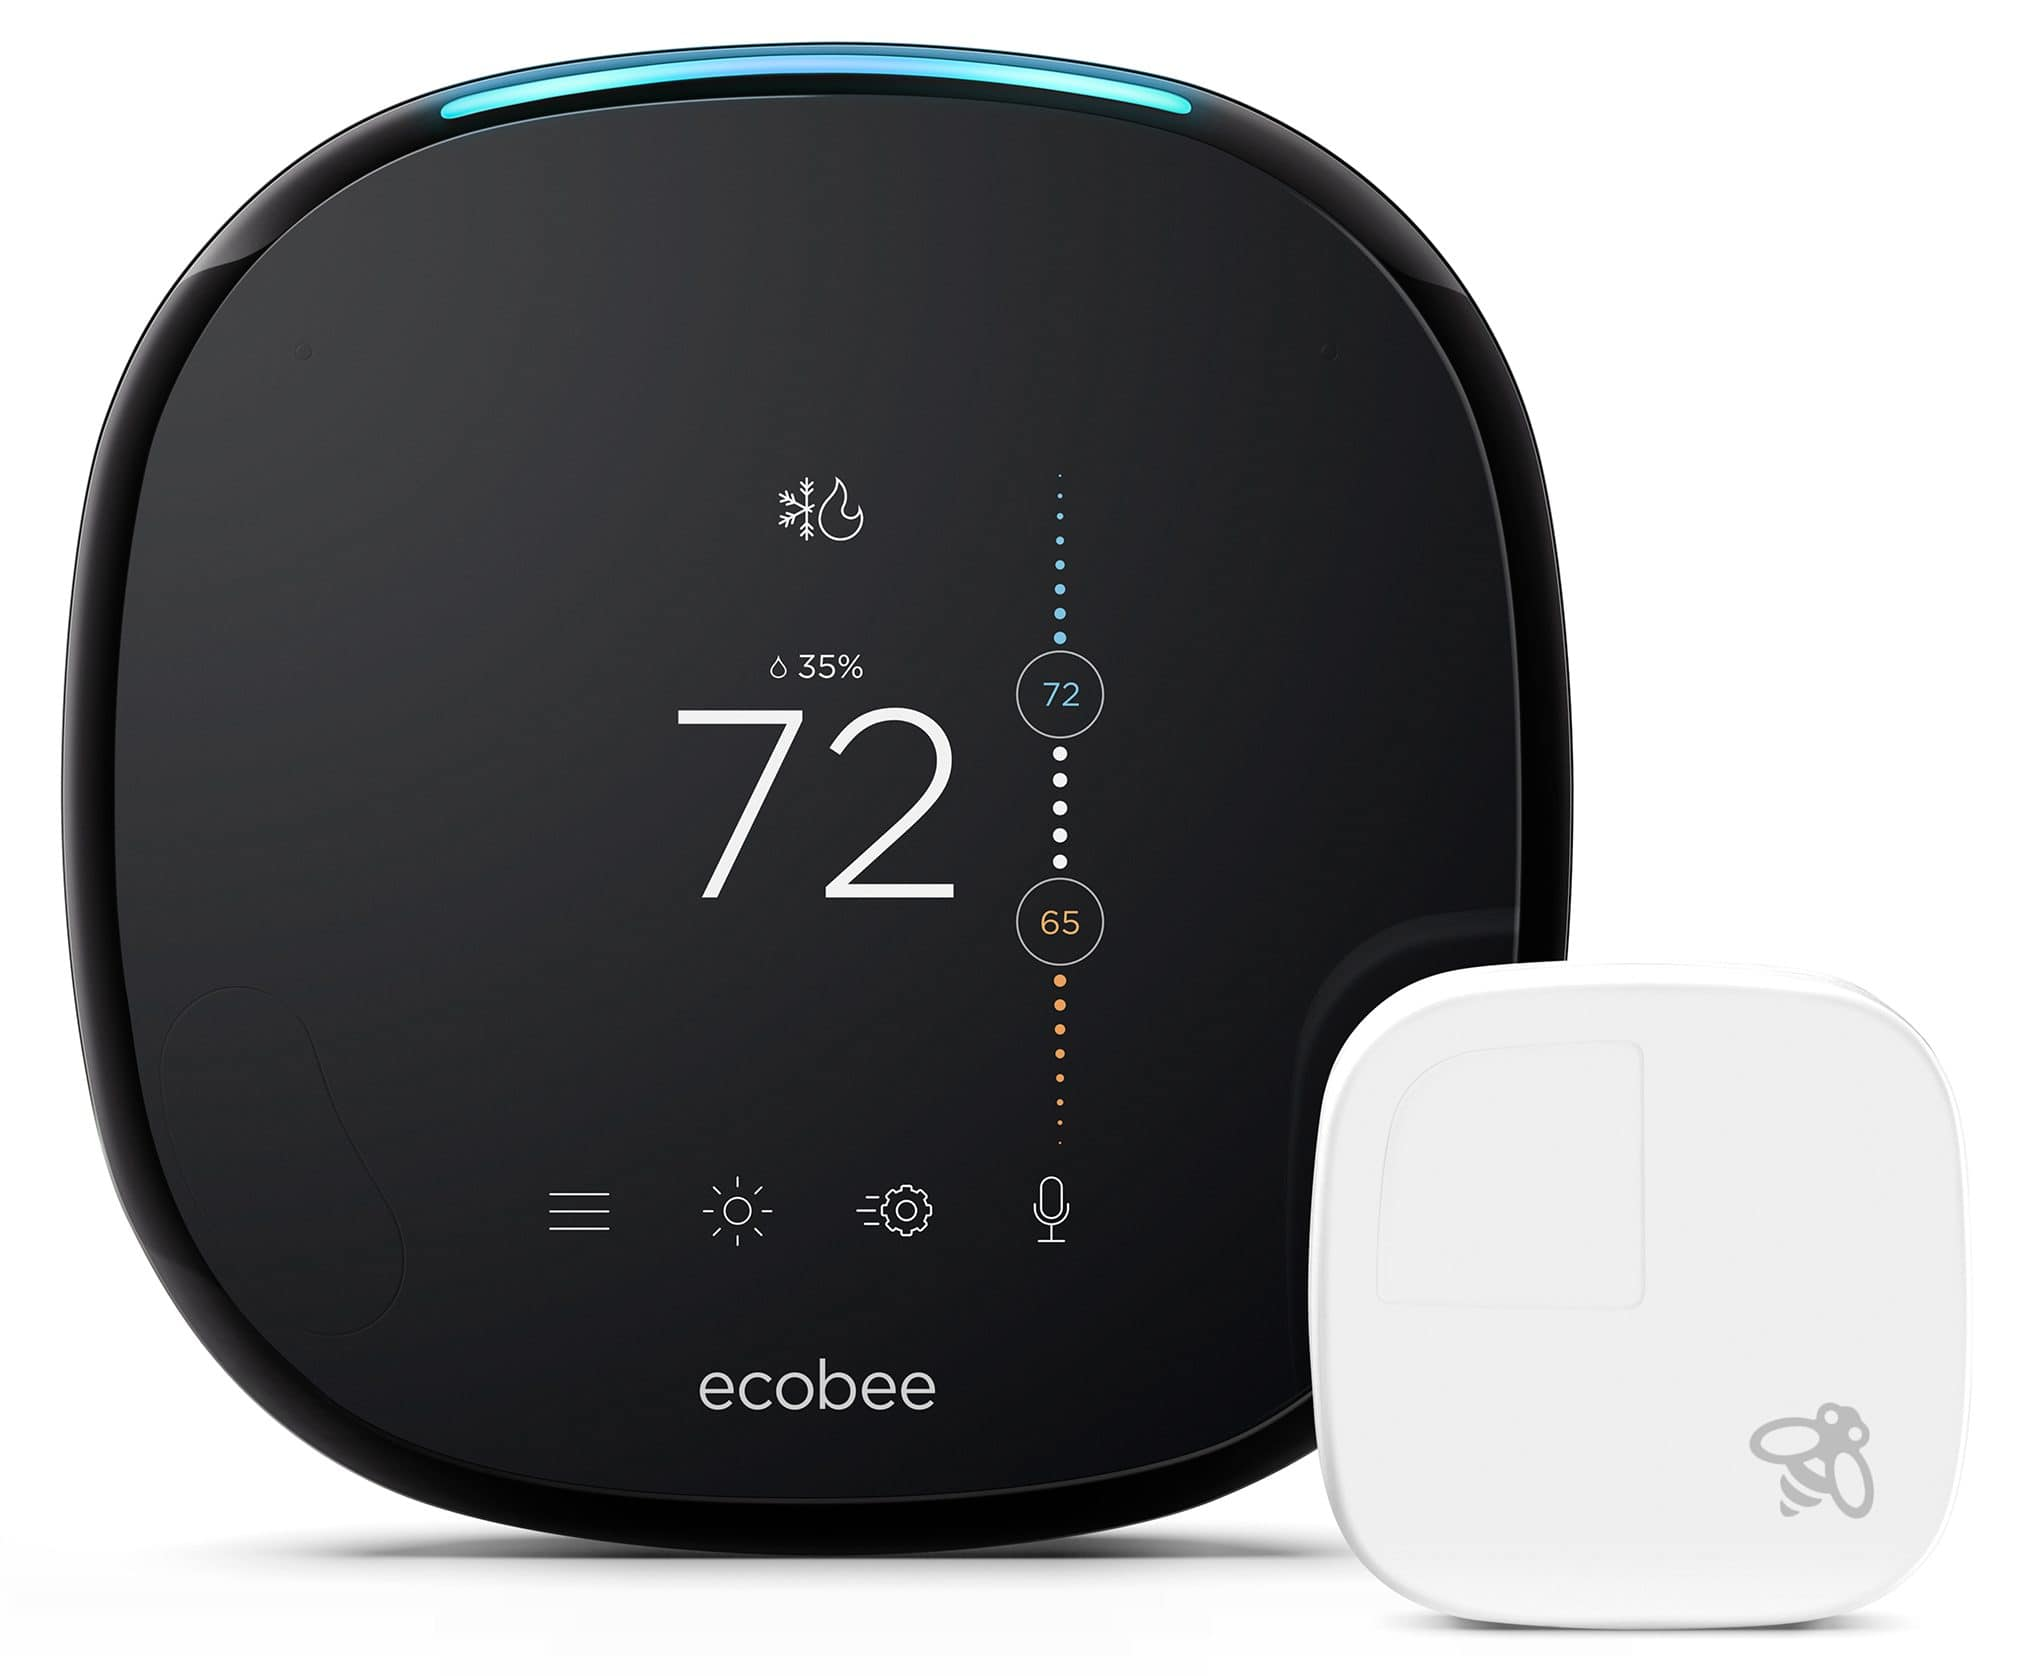 ecobee 4 smart home thermostat with sensor